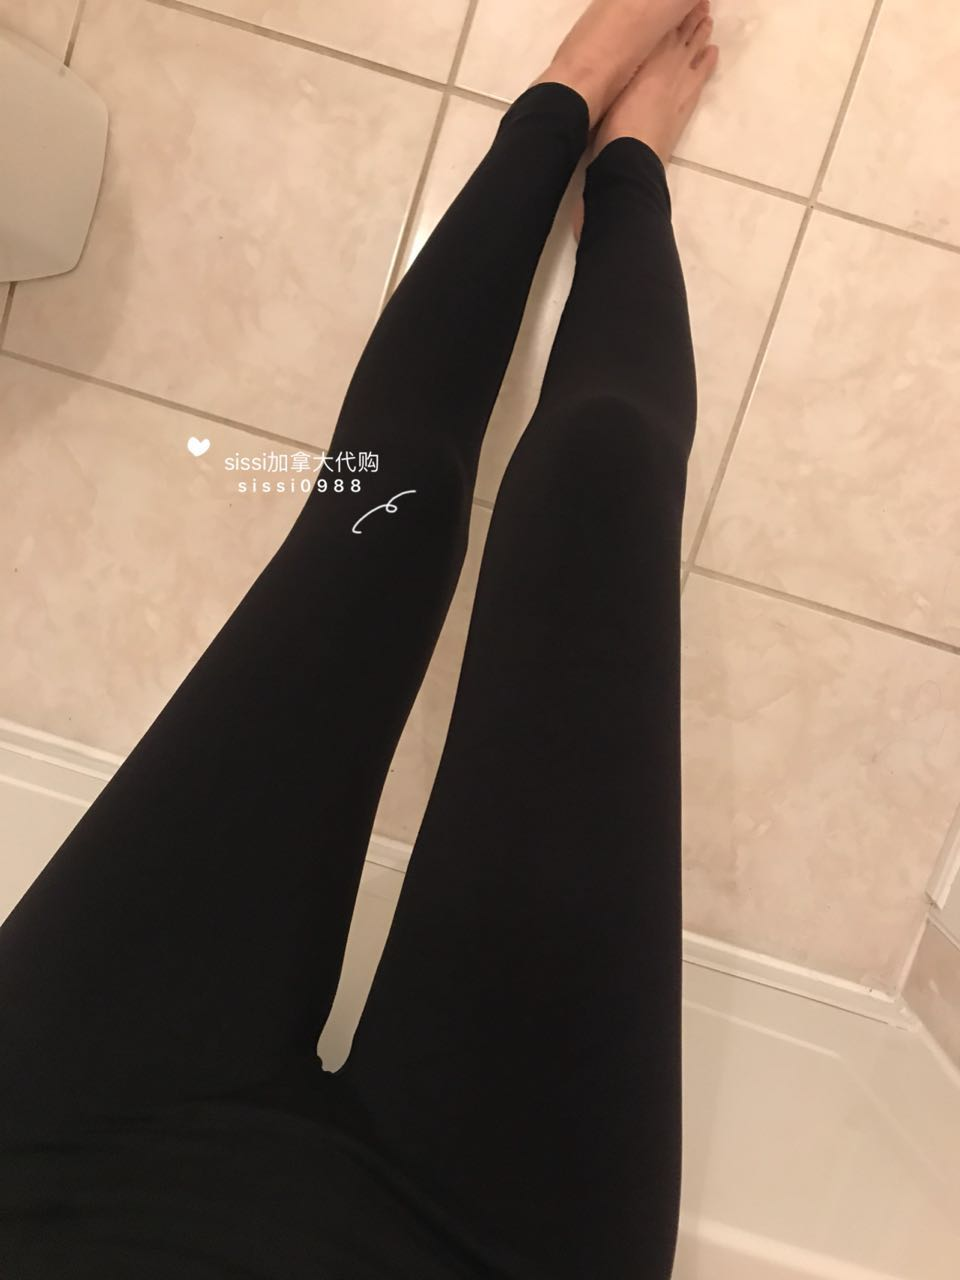 0710314a44c537 Canada CATHERINE MALANDRINO plus velvet leggings a pack of two Toronto  delivery